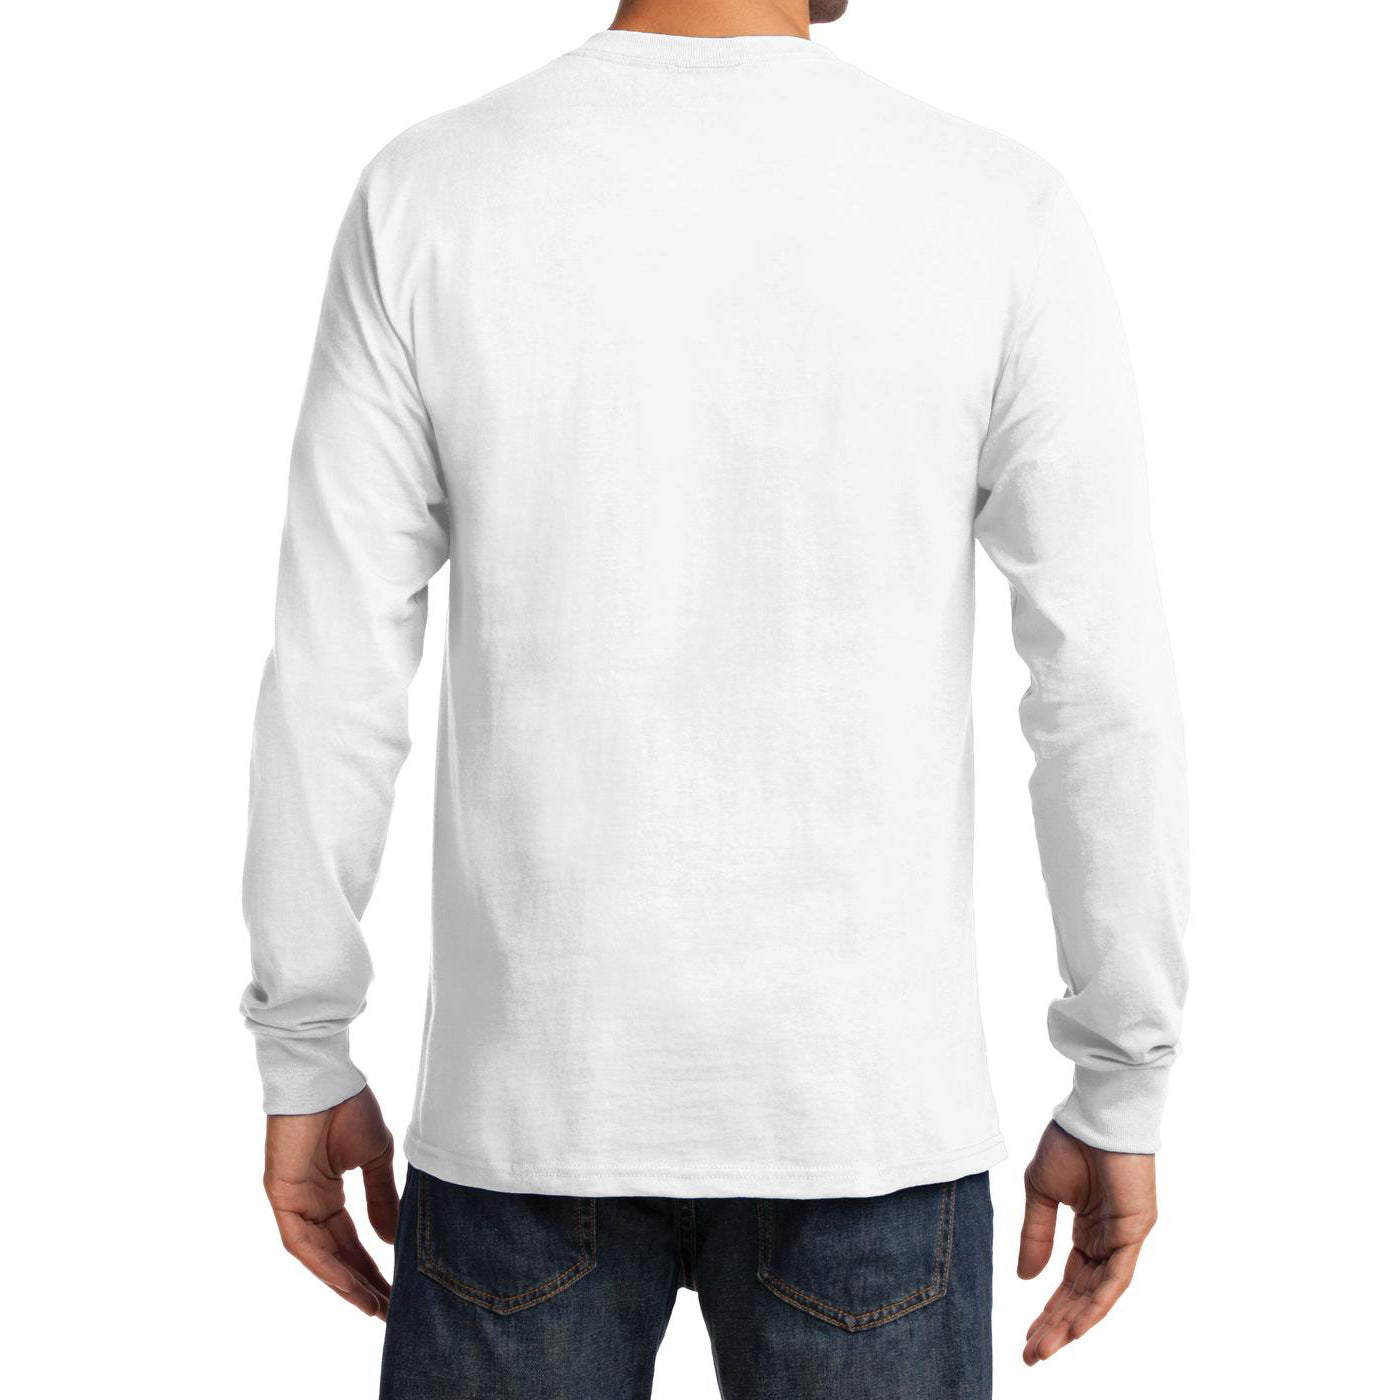 Men's Long Sleeve Essential Tee - White - Back